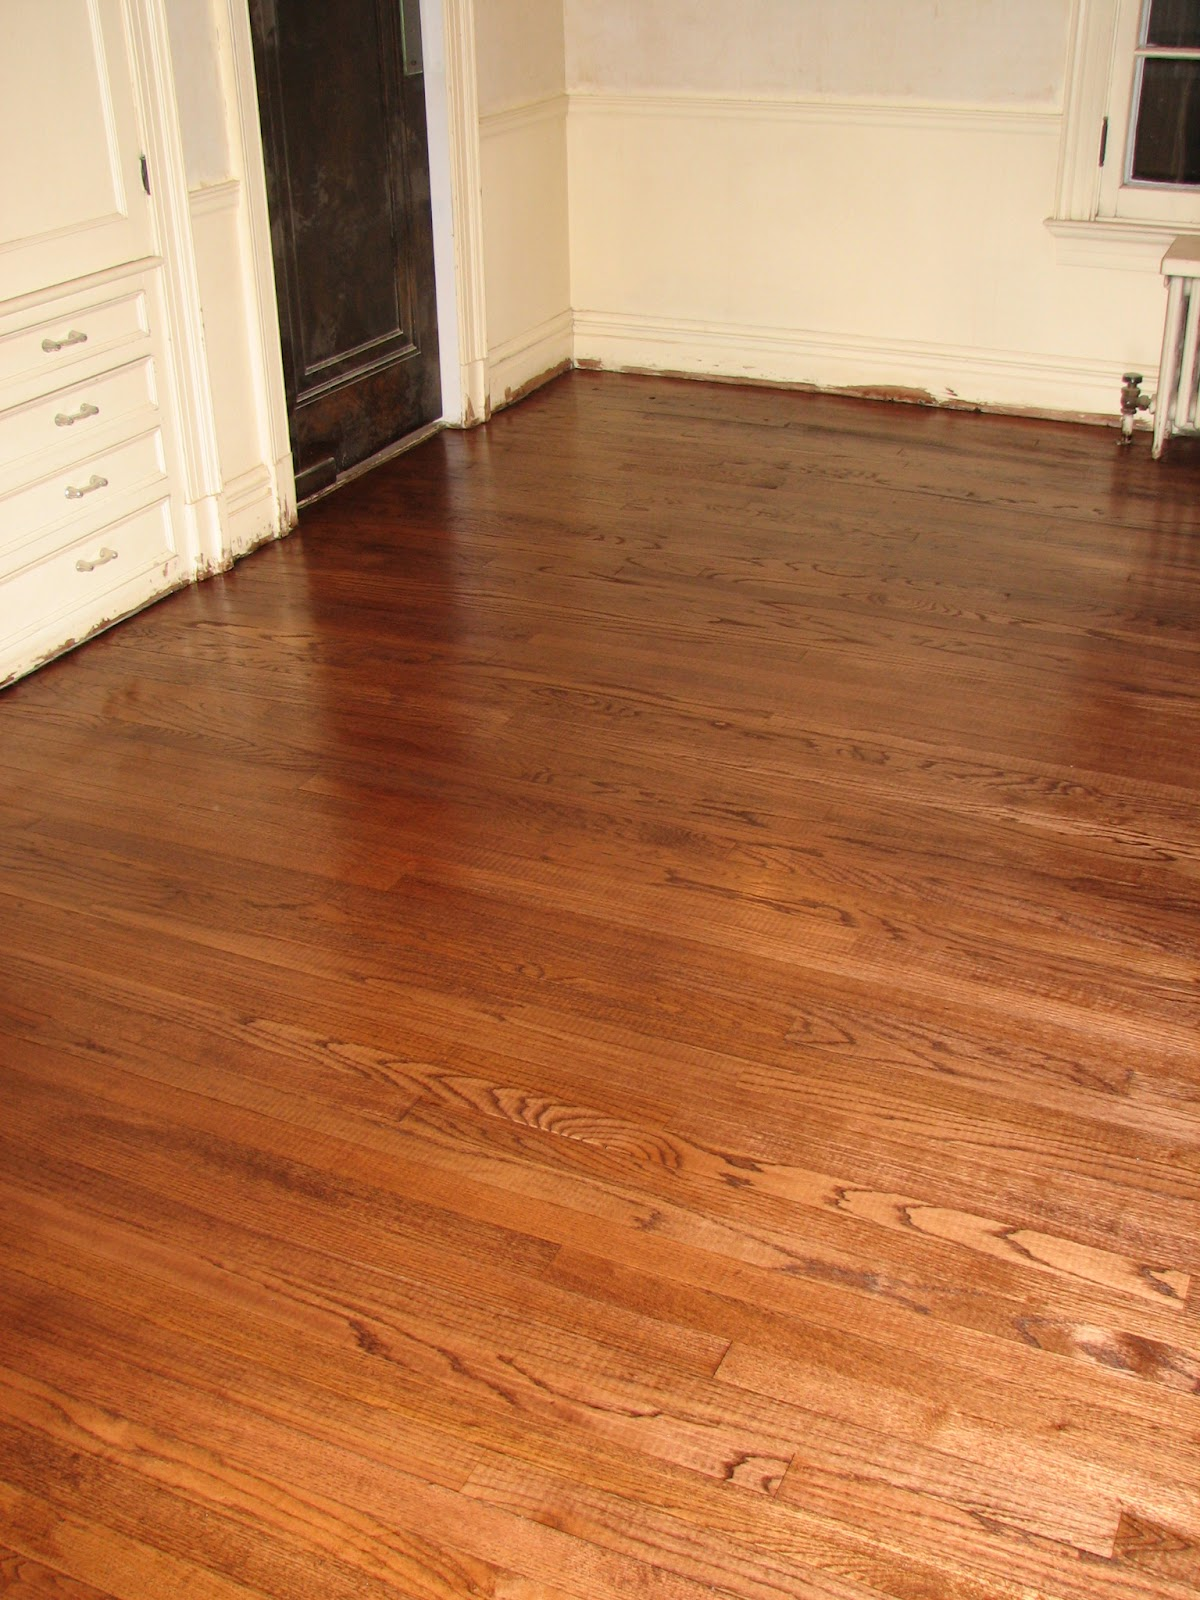 Renovating a historic home refinishing wood floors for Floor designs